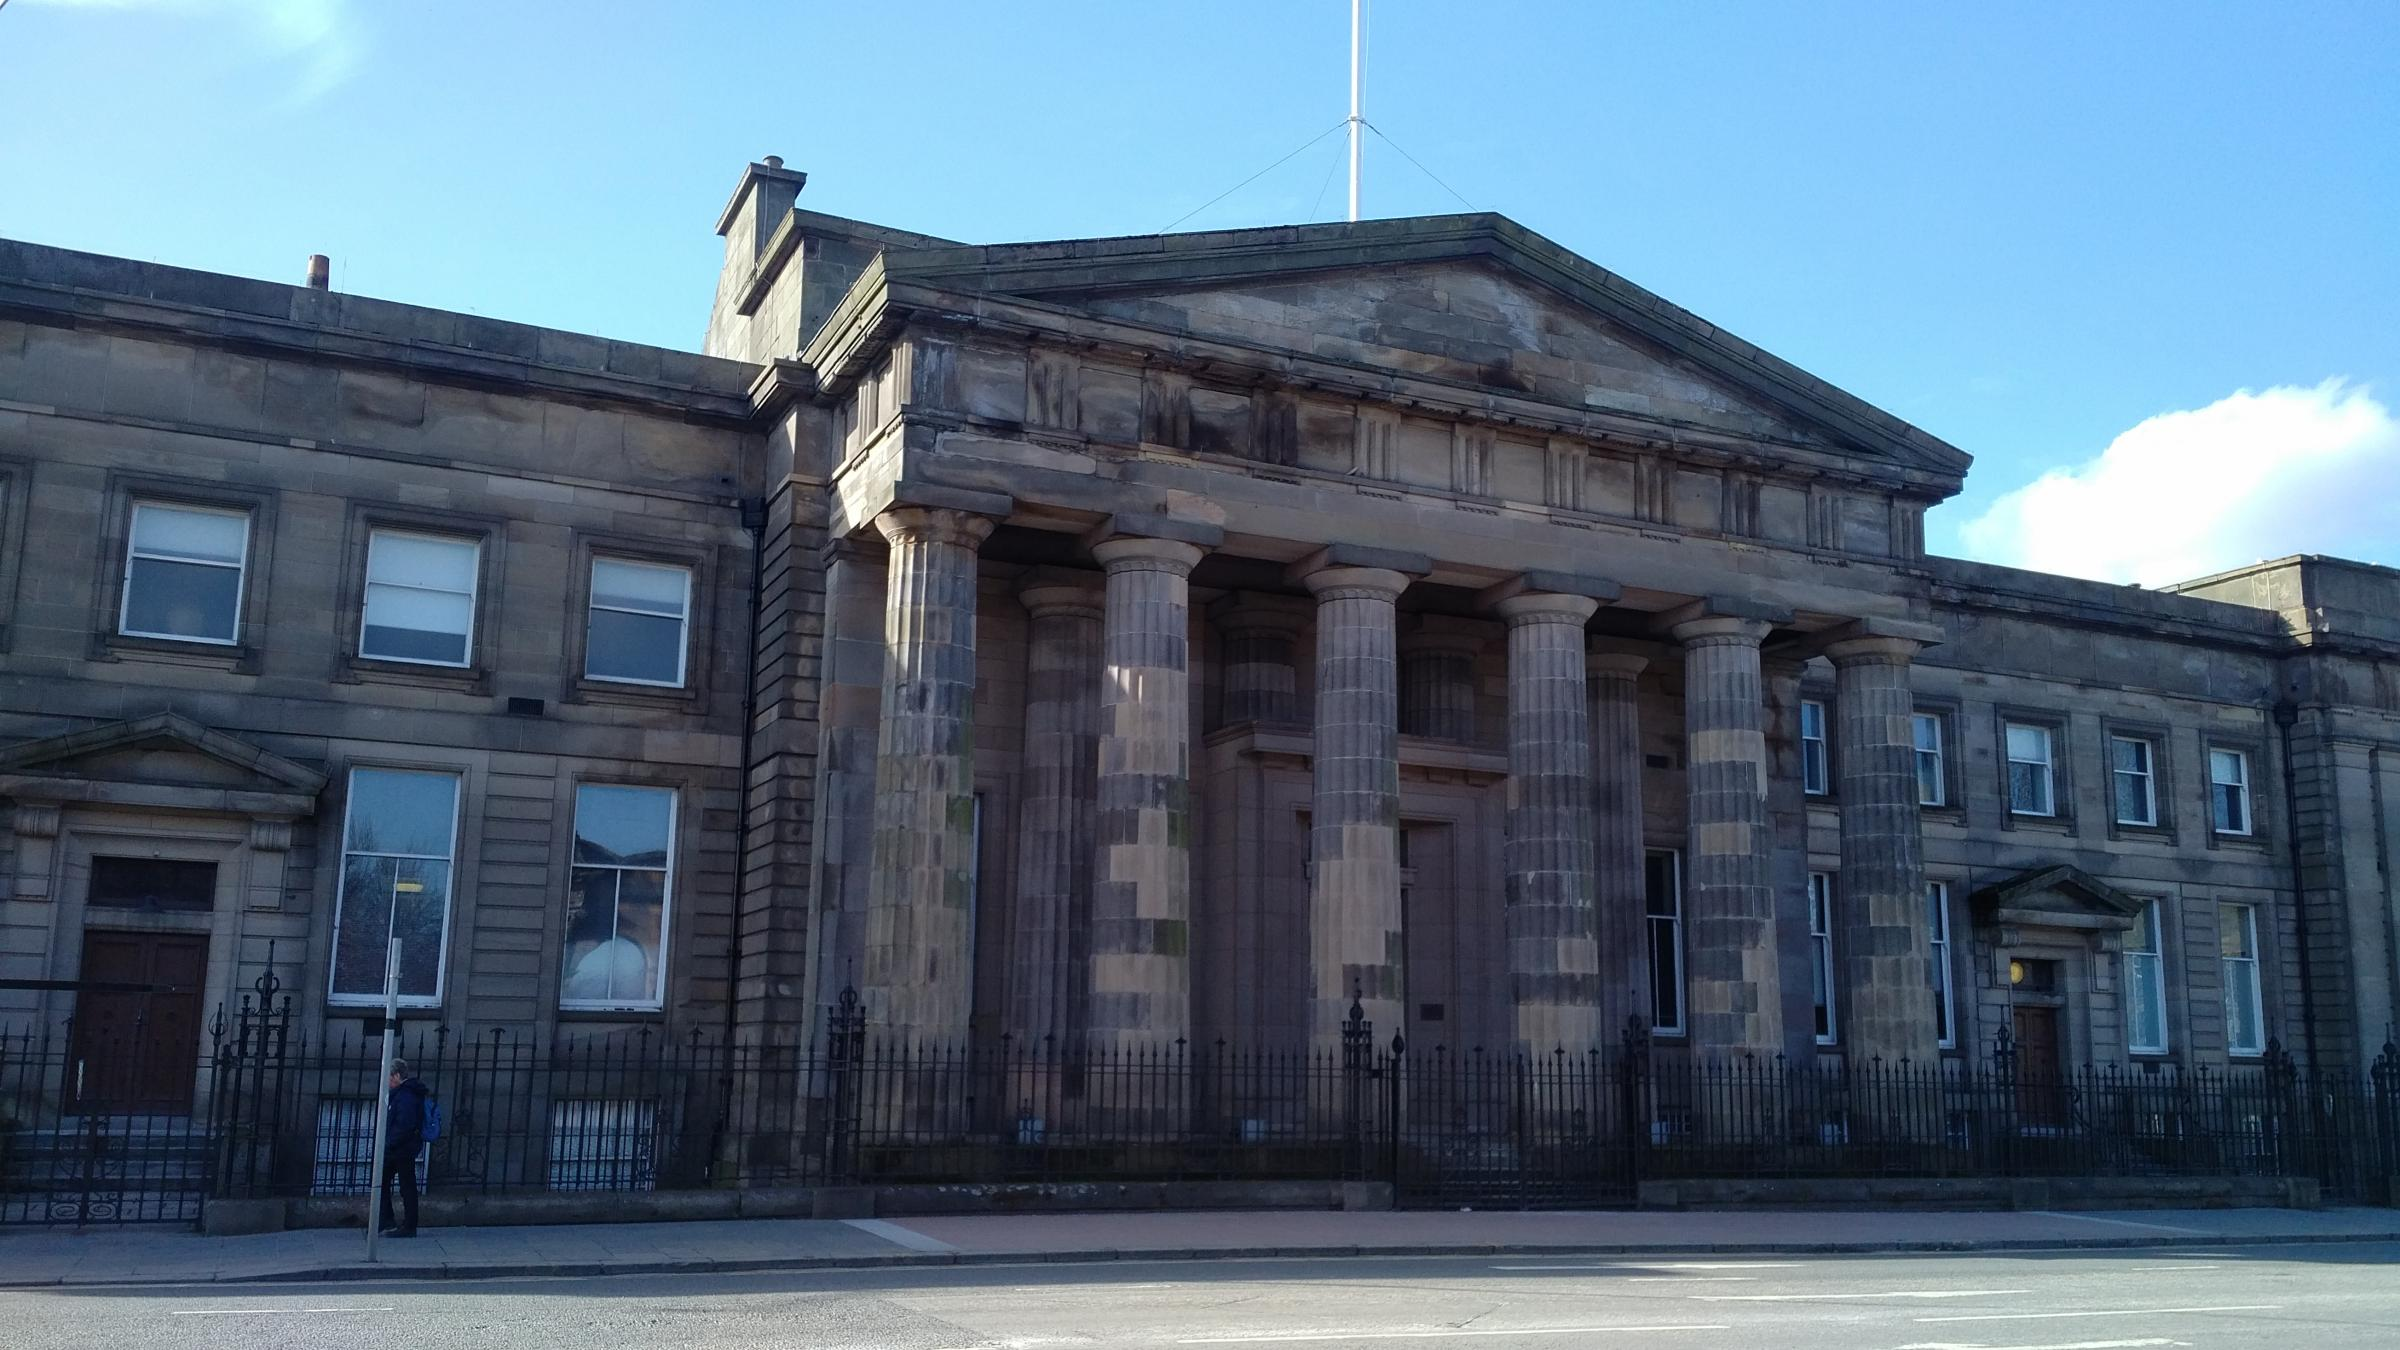 The High Court in Glasgow